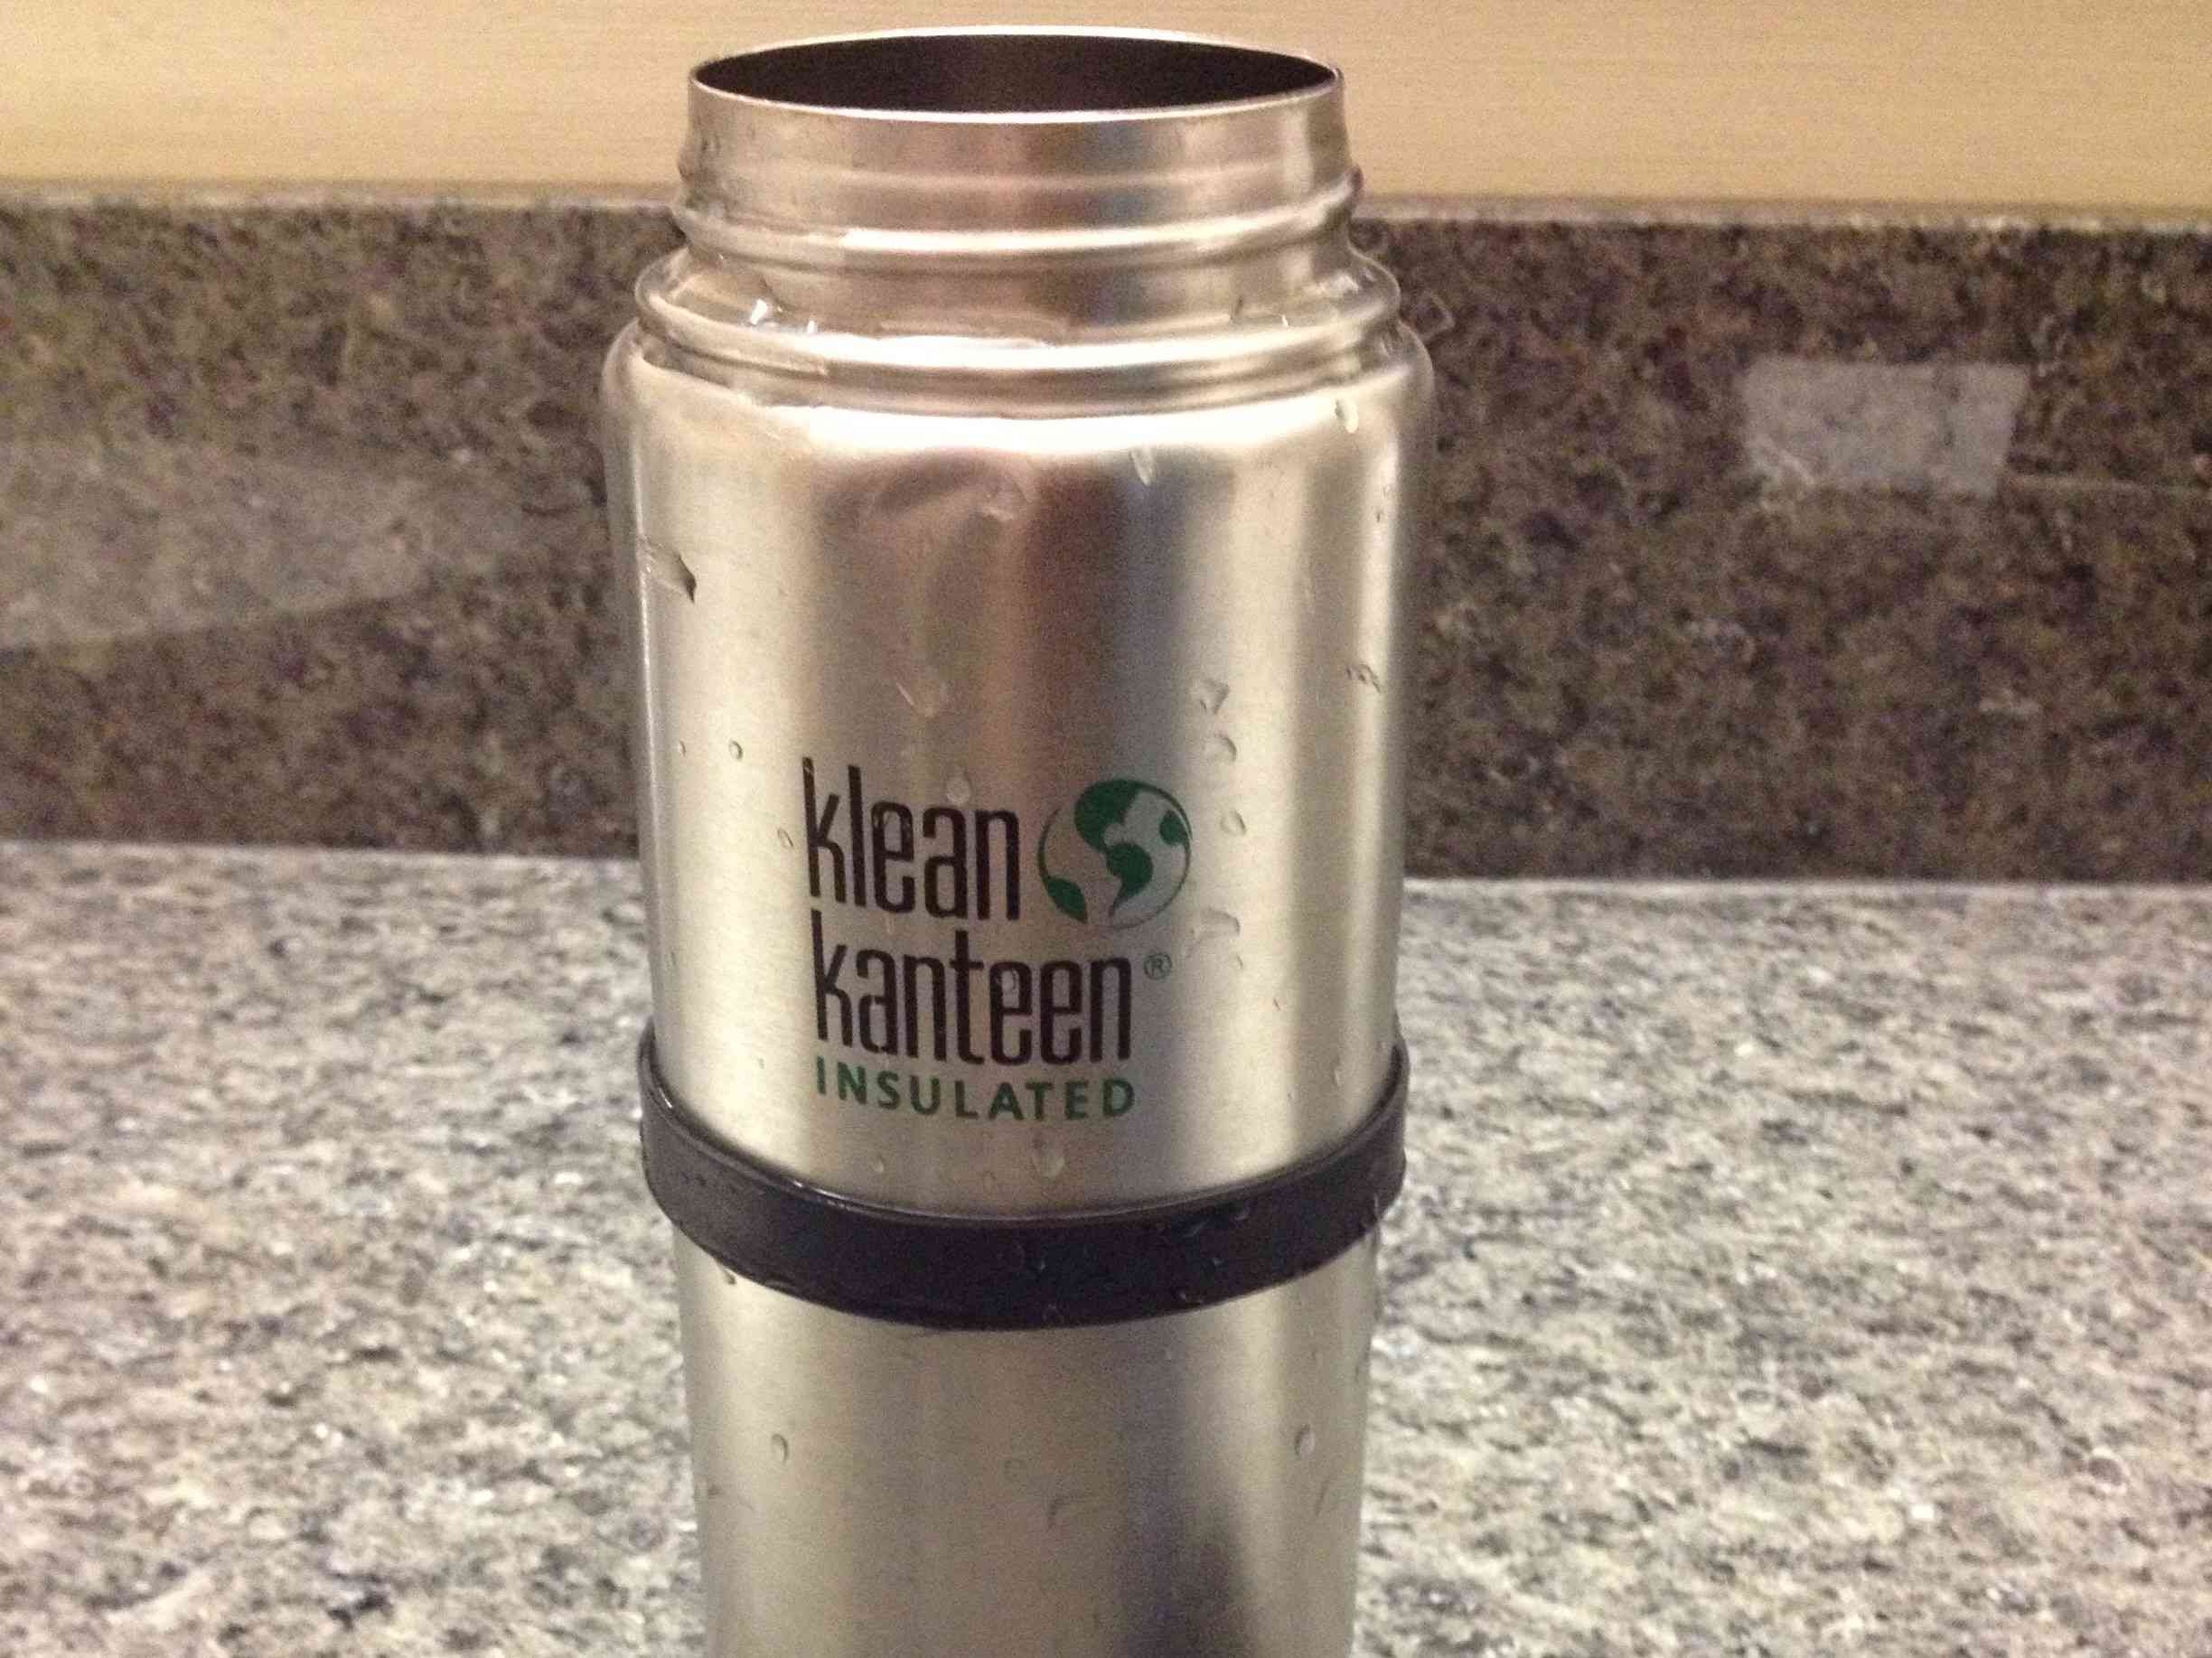 Klean kanteen insulated sitting on a counter